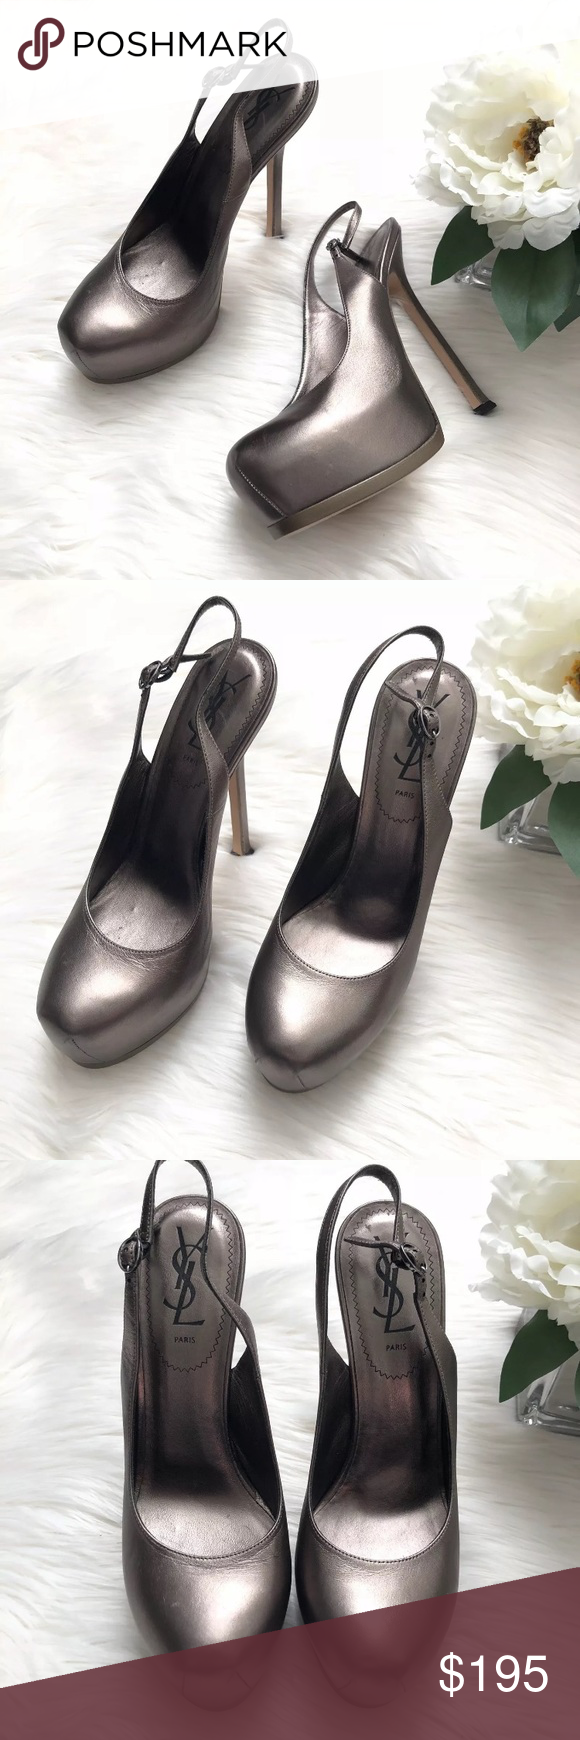 baf0c04b70f YSL Yves Saint Laurent Rose Gold Slingback Pumps Beautiful and in excellent  condition! YSL Tribtoo